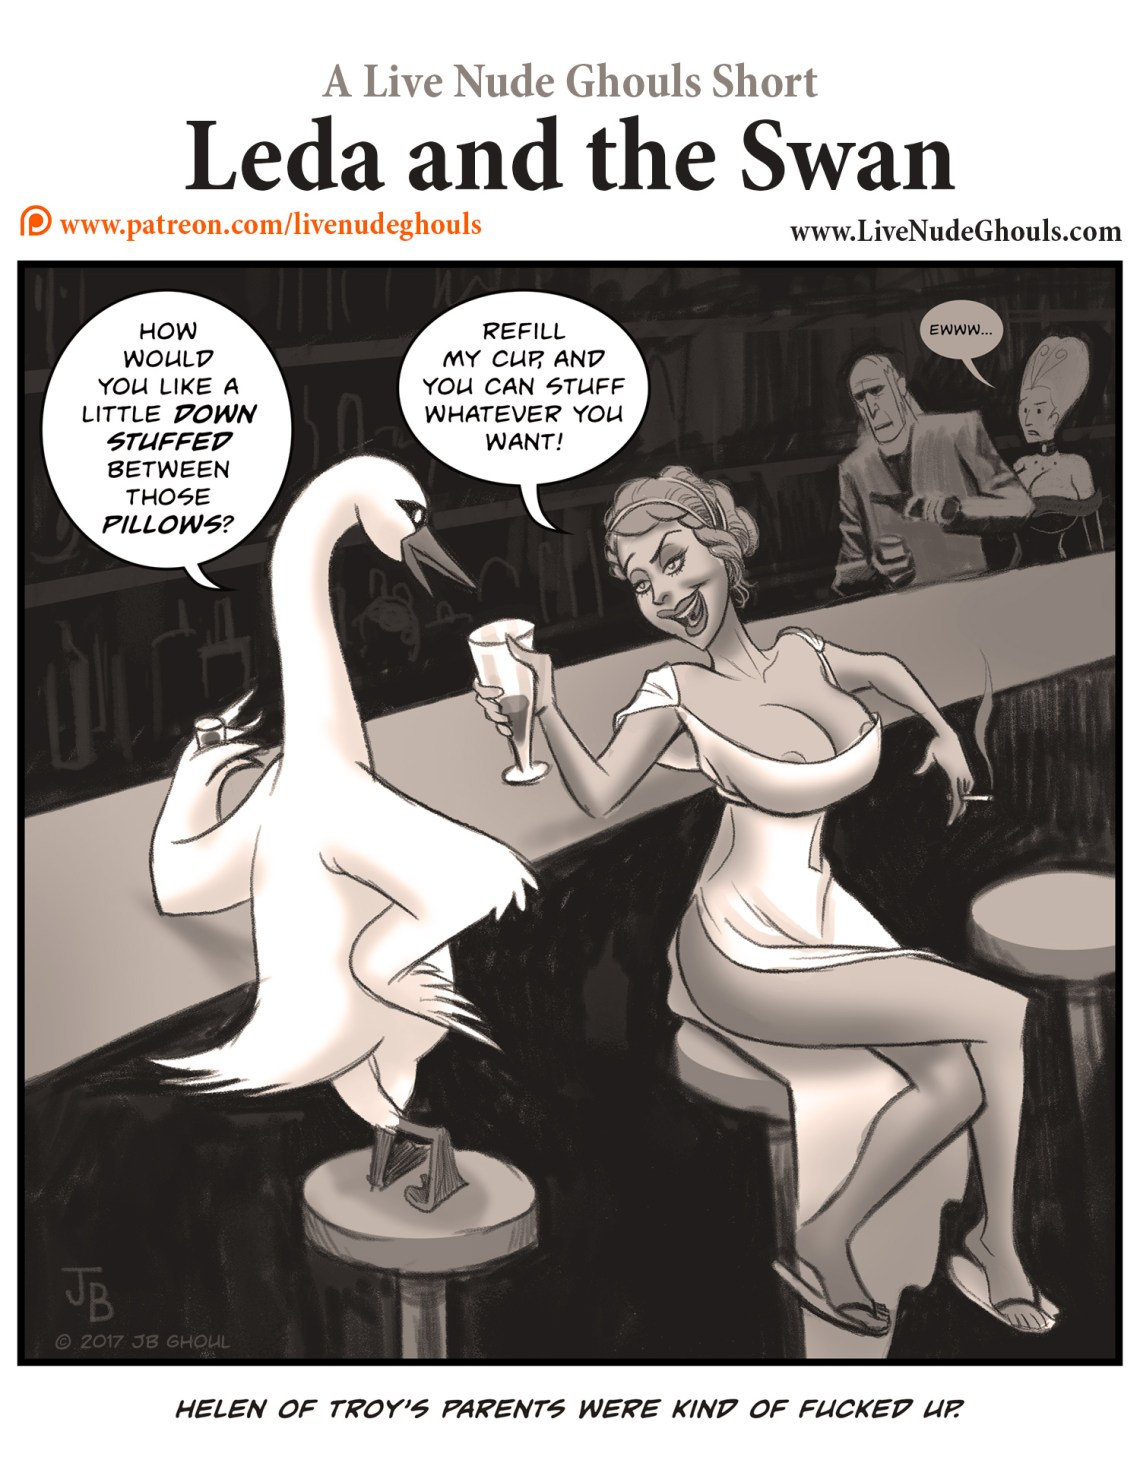 Leda is being hit on by a swan... Helen of Troy